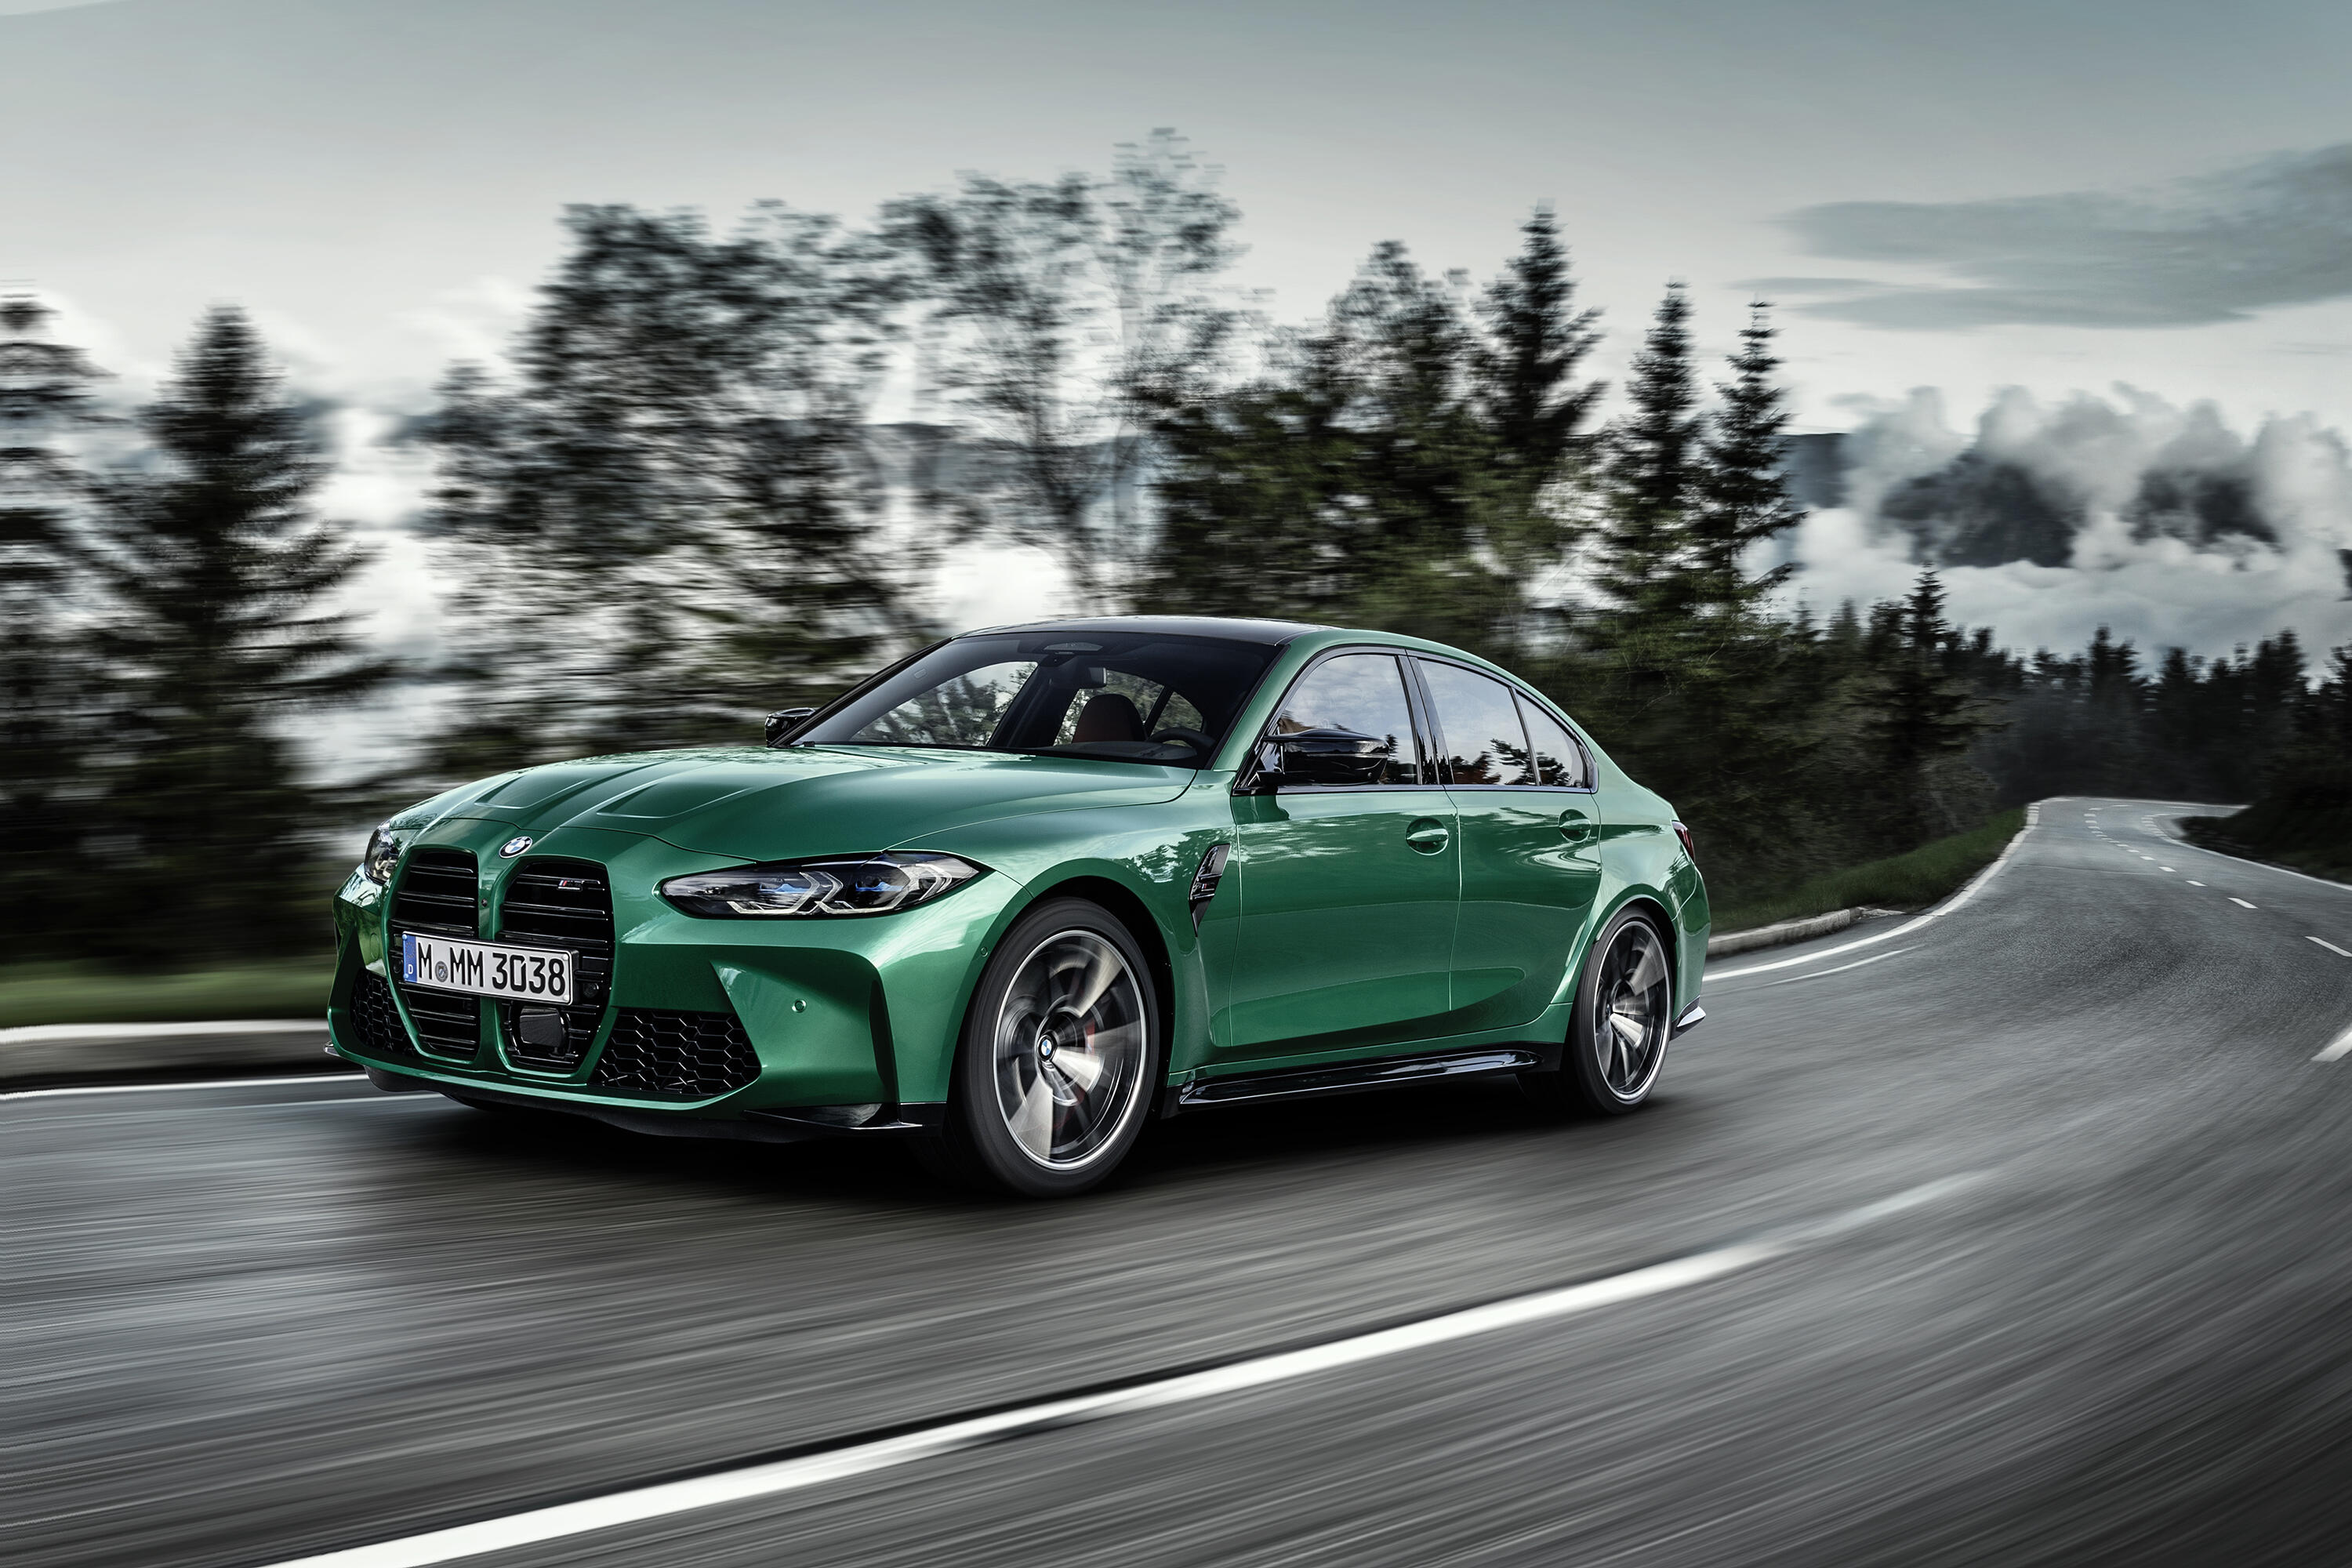 2021 Bmw M3 Revealed The Og Sport Sedan Returns With 473 Hp And A Controversial Face Roadshow